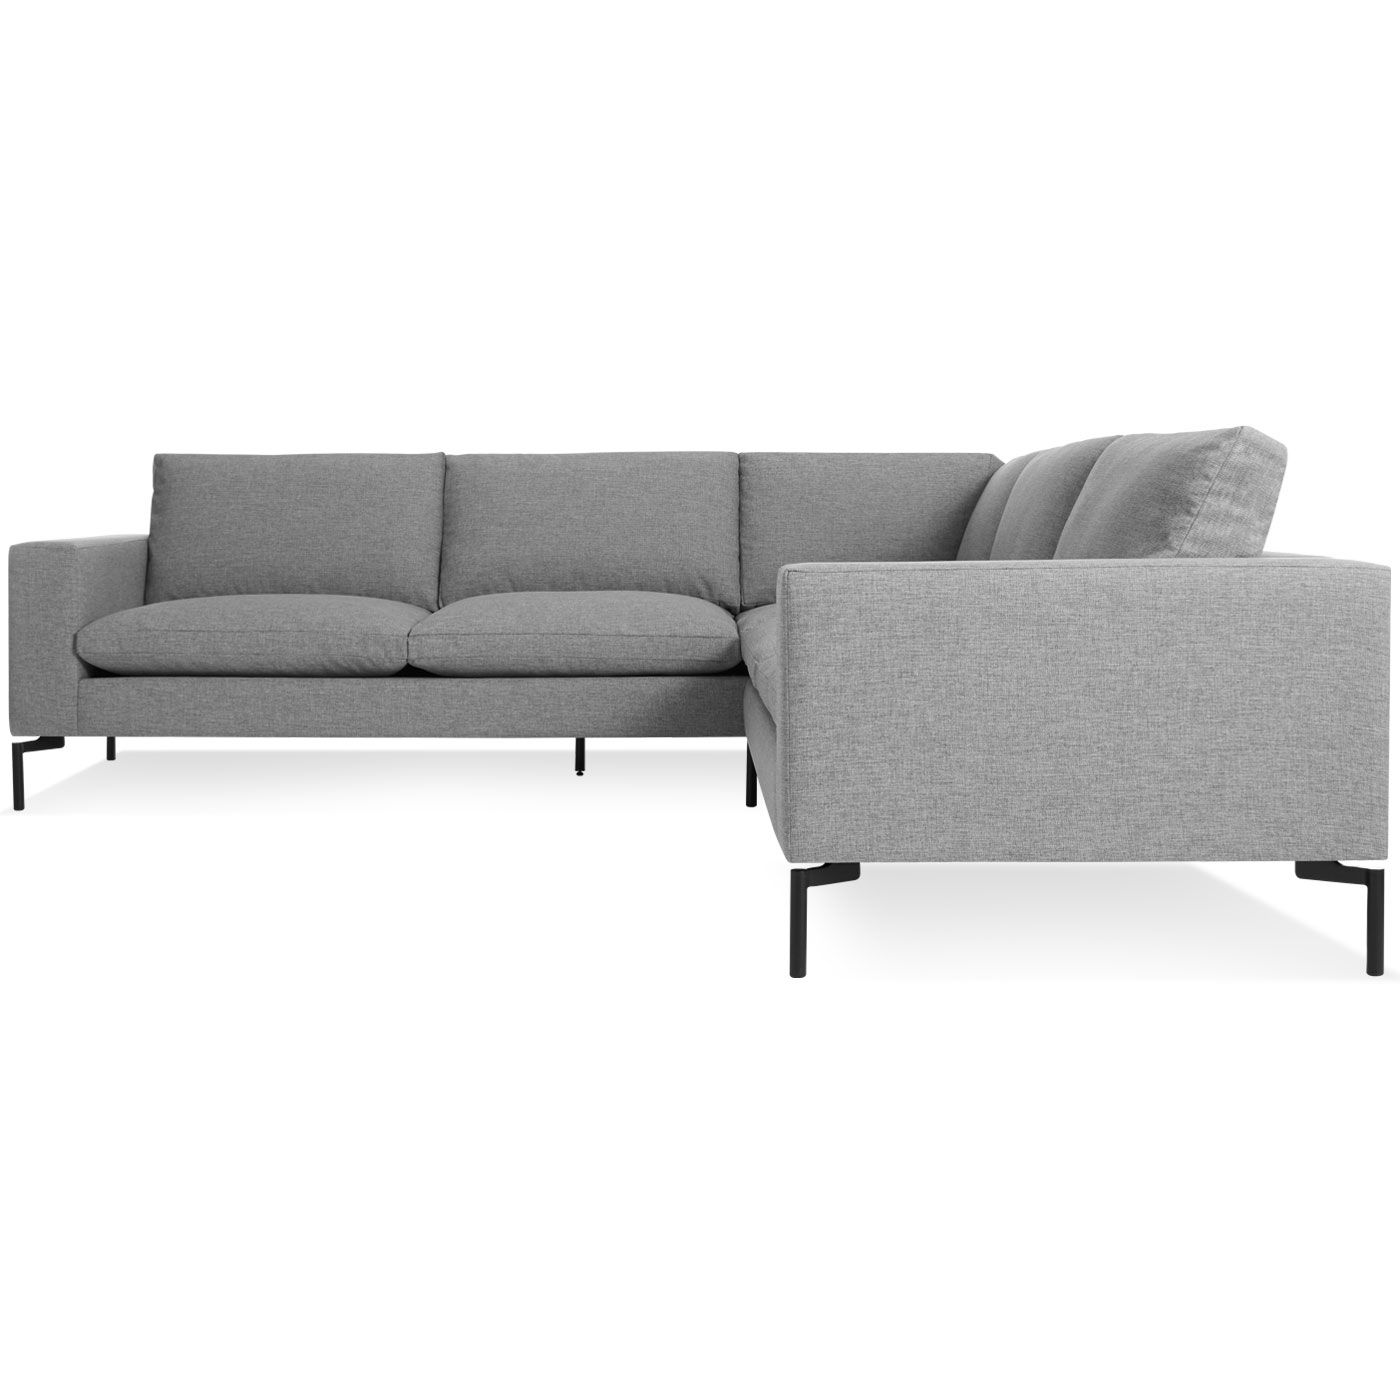 Crate & Barrel Axis II 3 Piece Sleeper Sectional